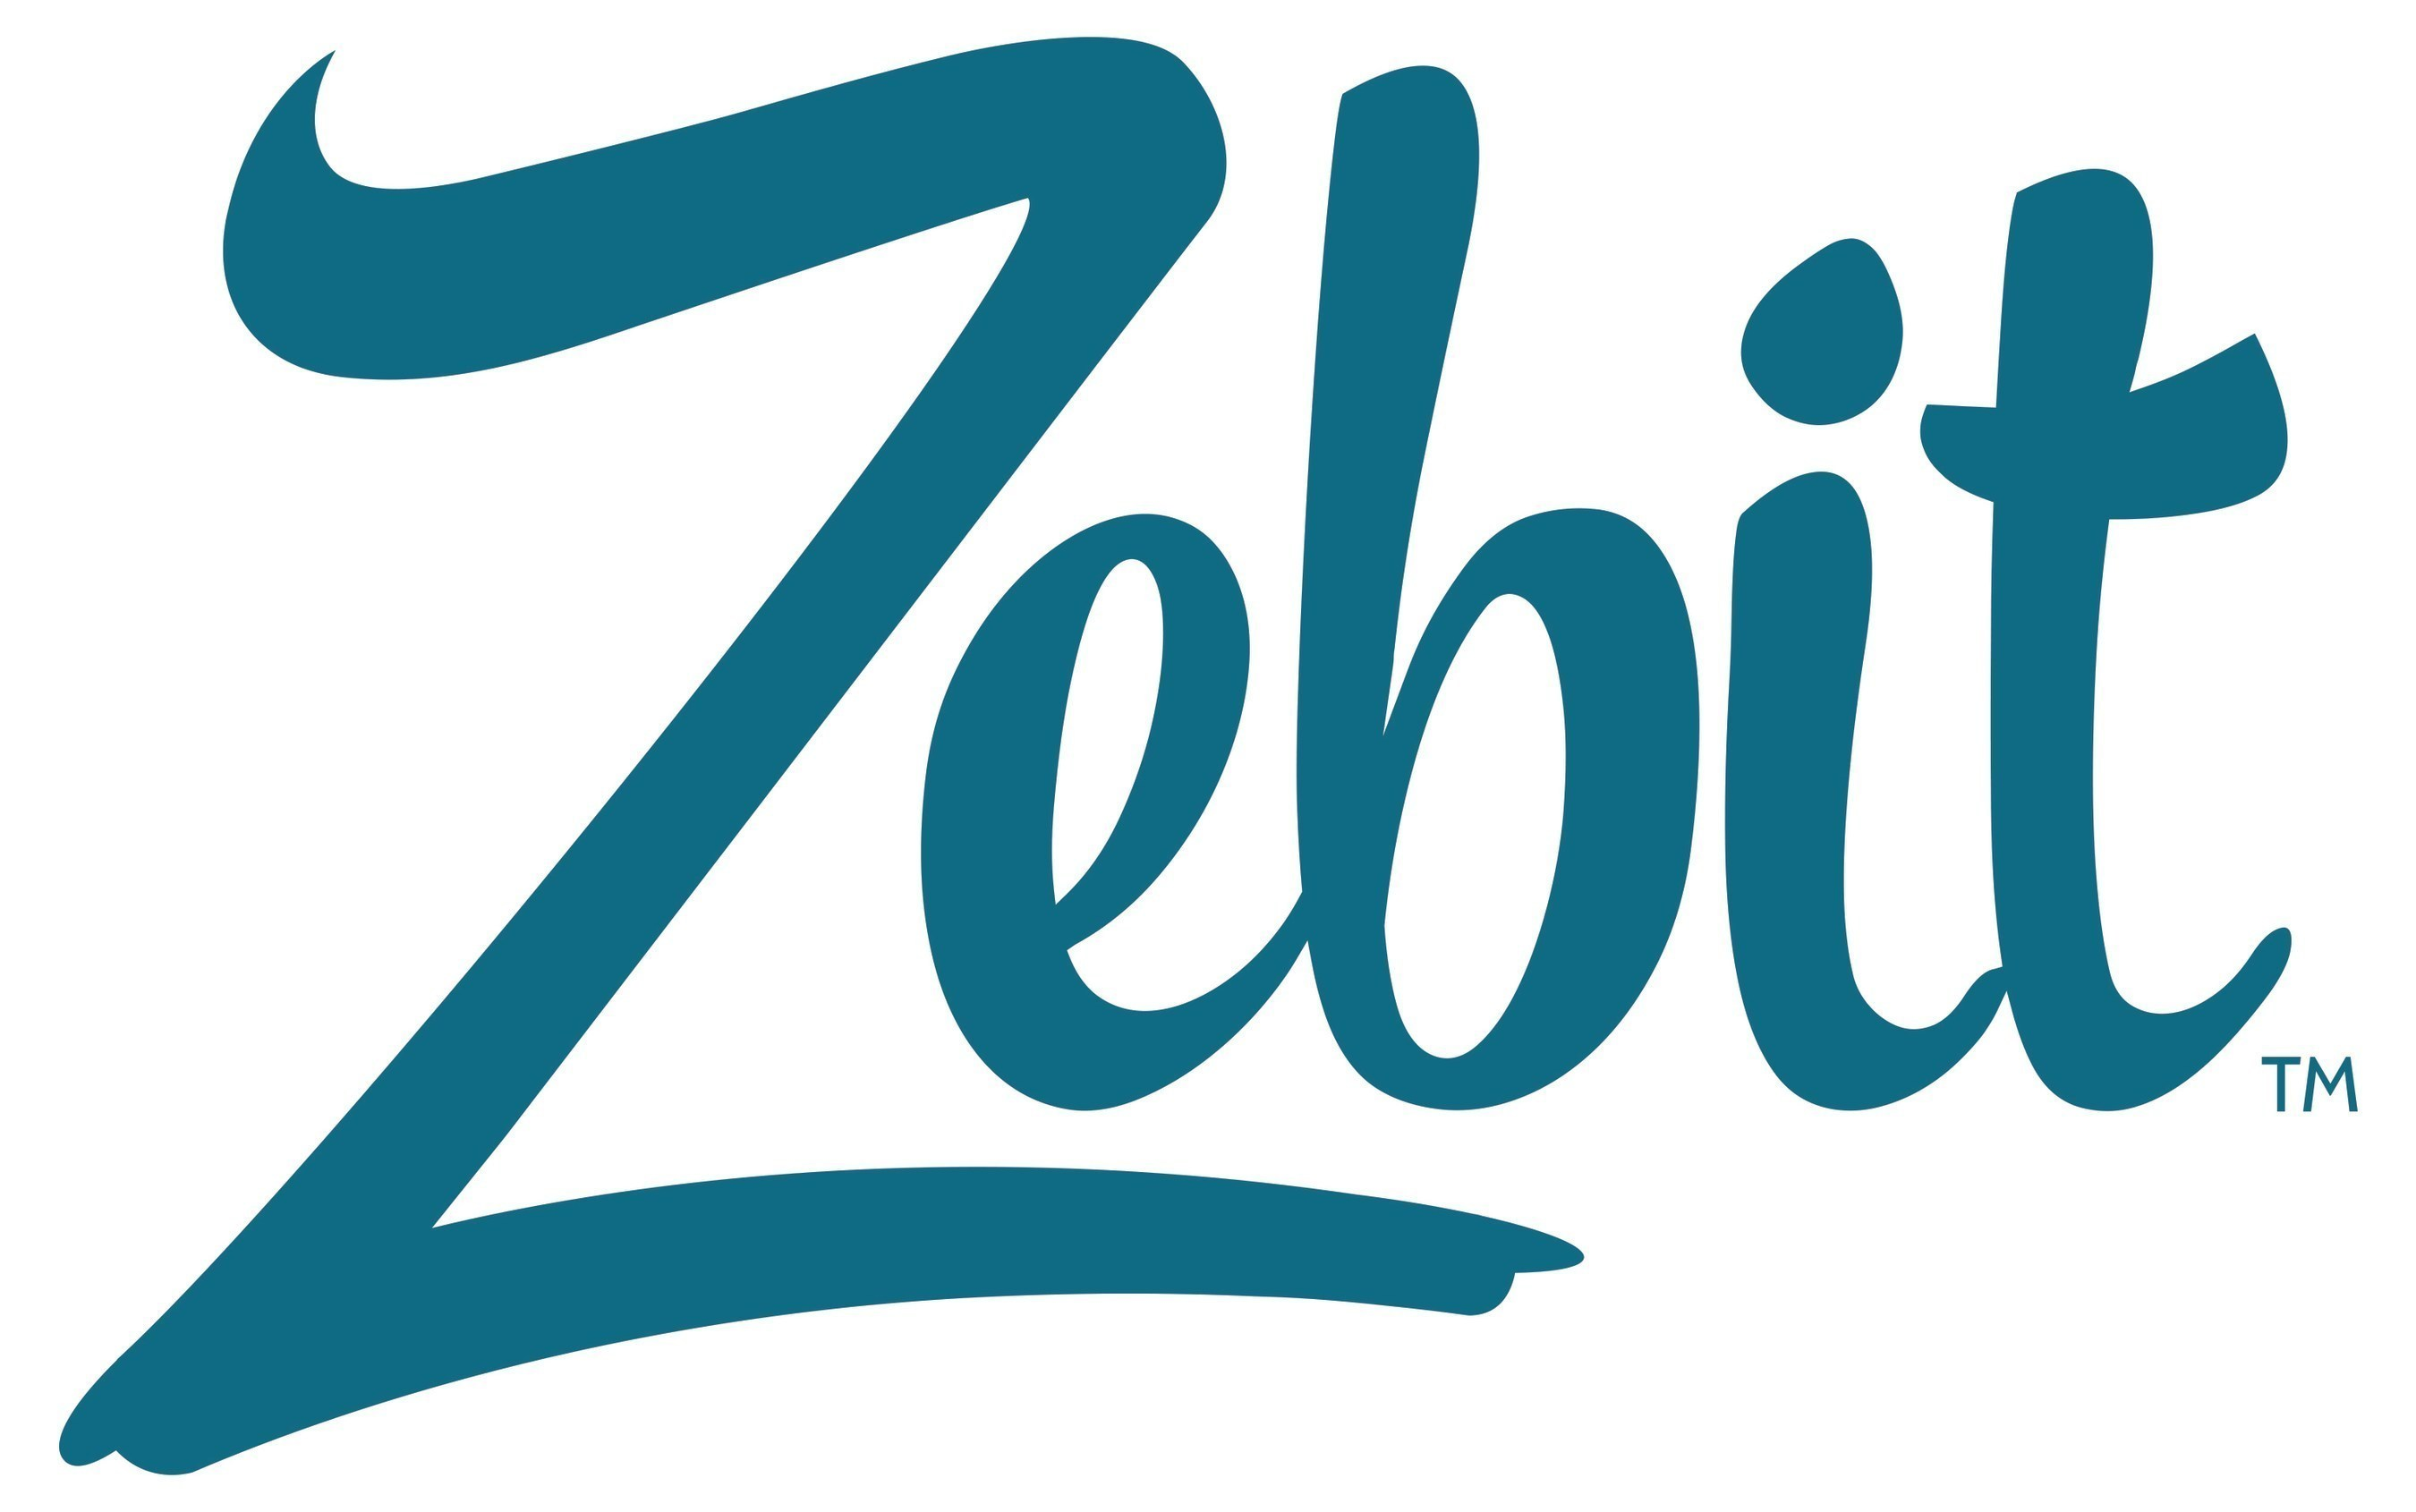 Zebit, Inc.